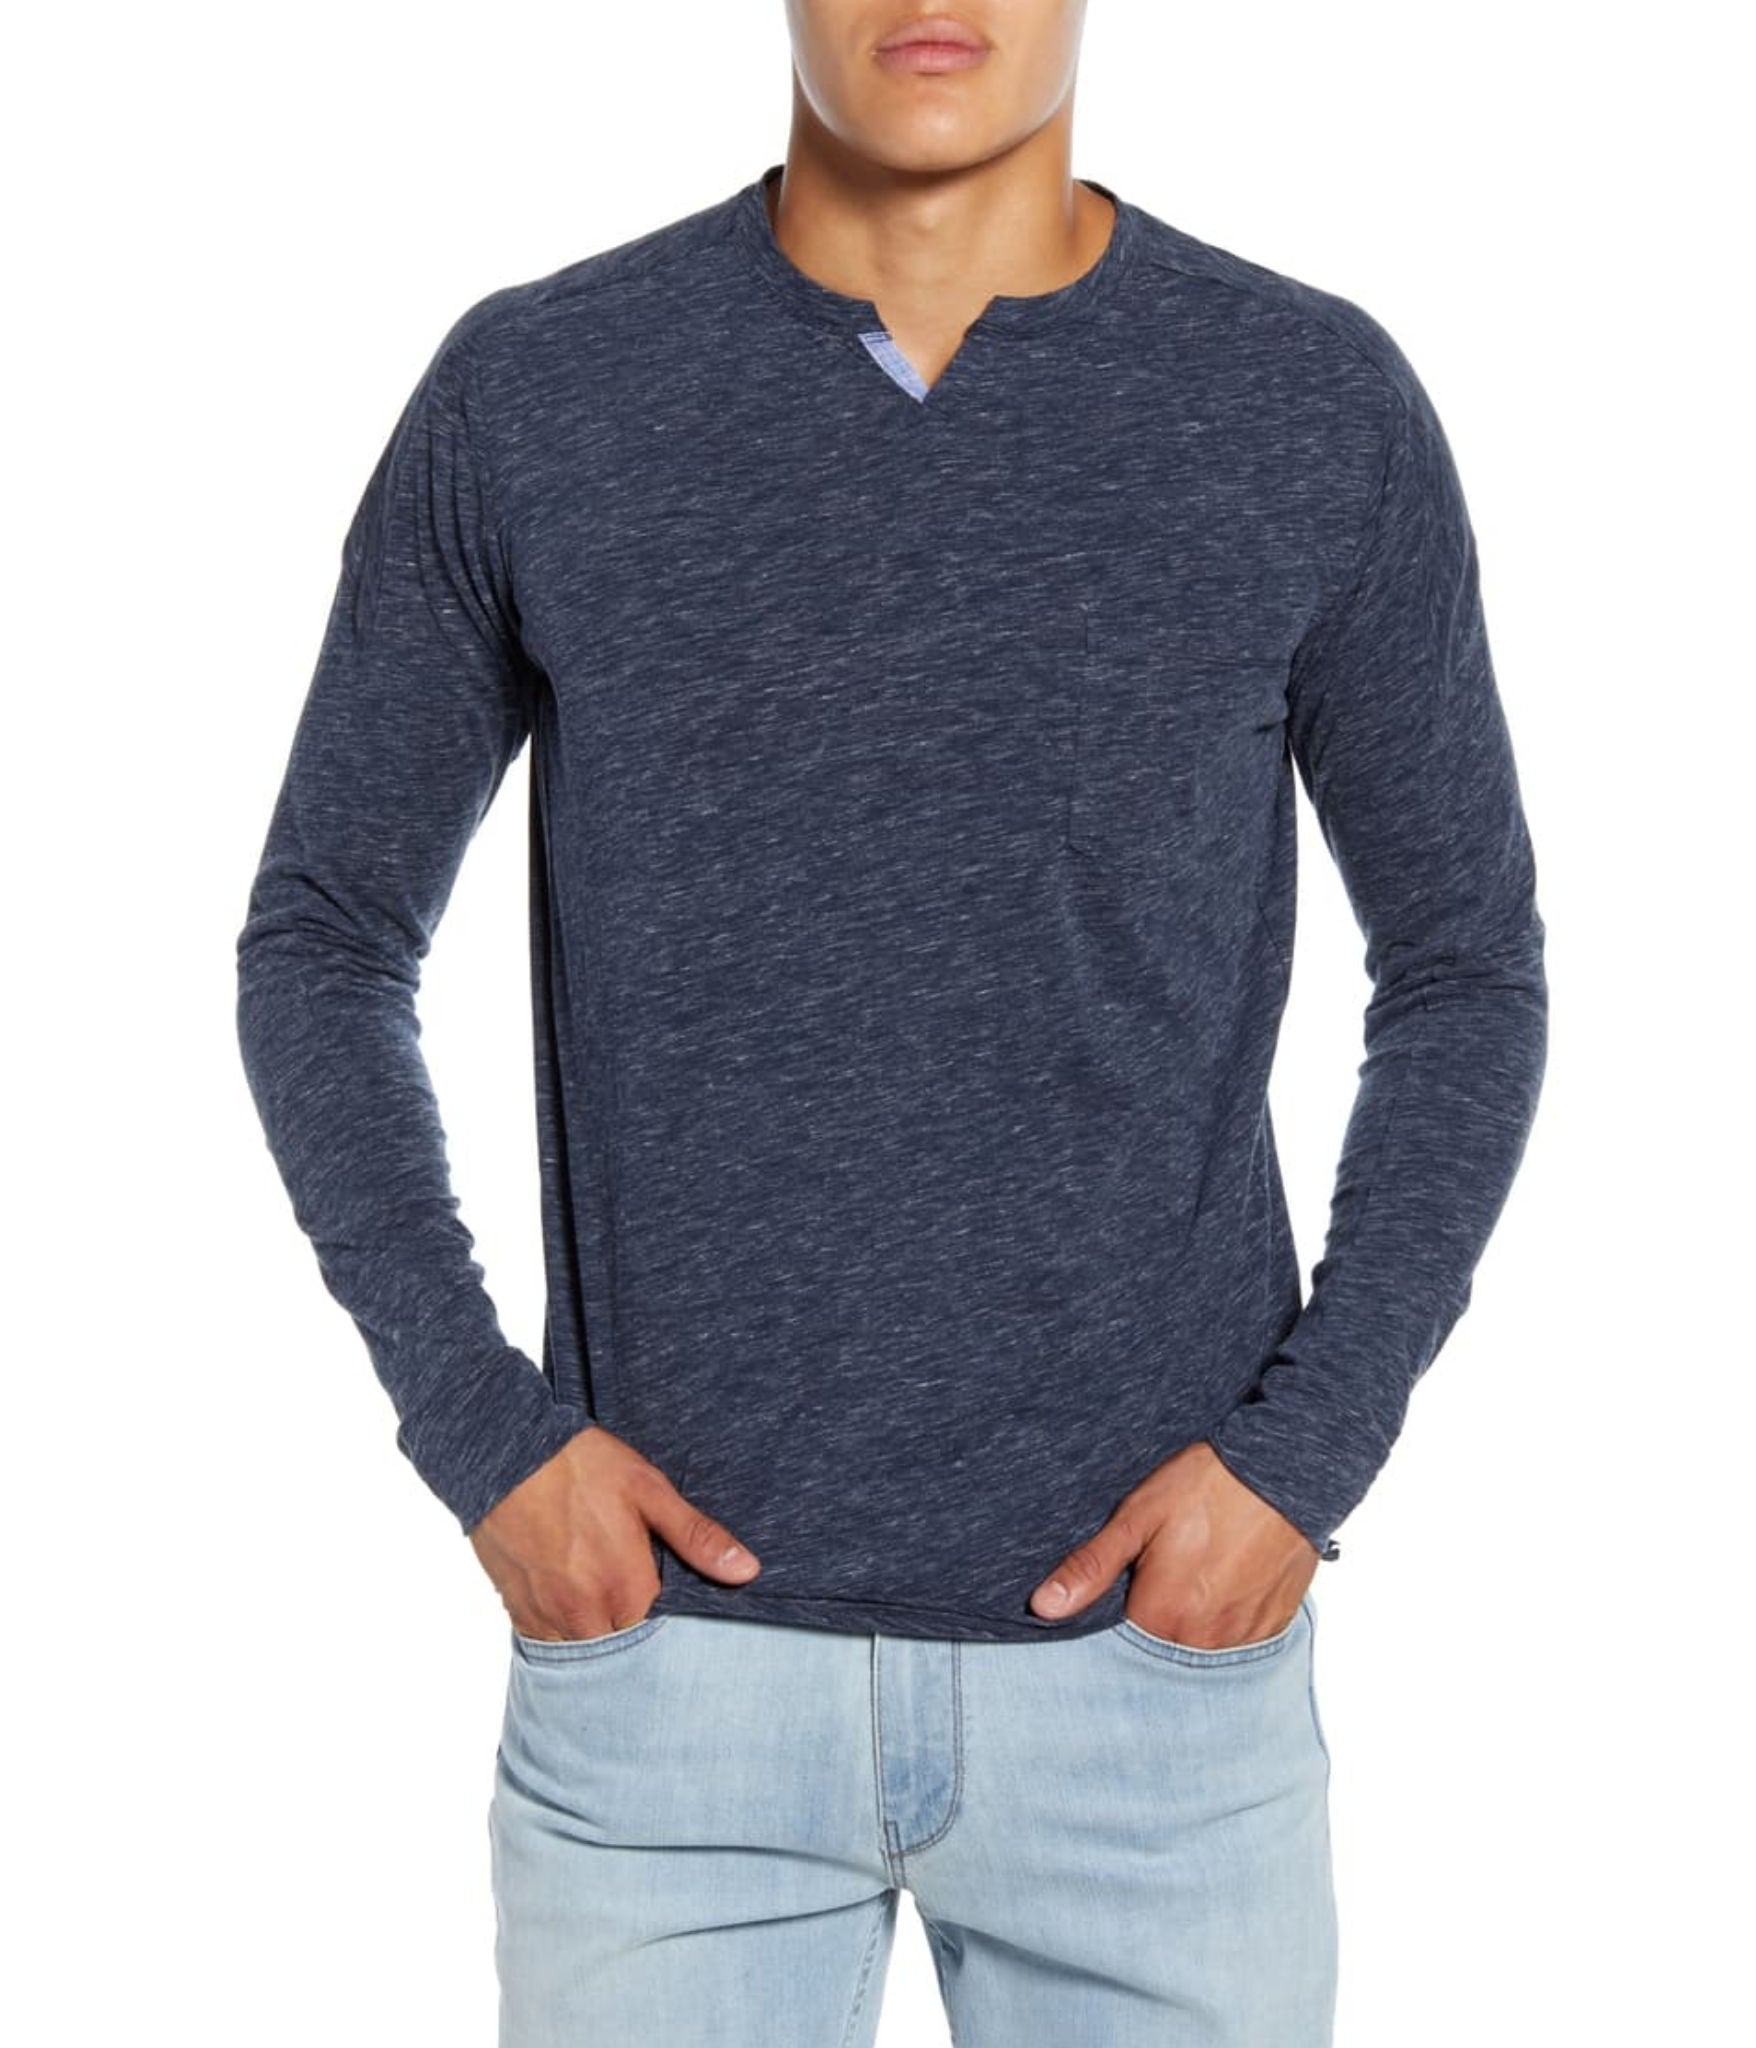 GoodMan Brand LS Victory V-Notch Tee Navy Heather